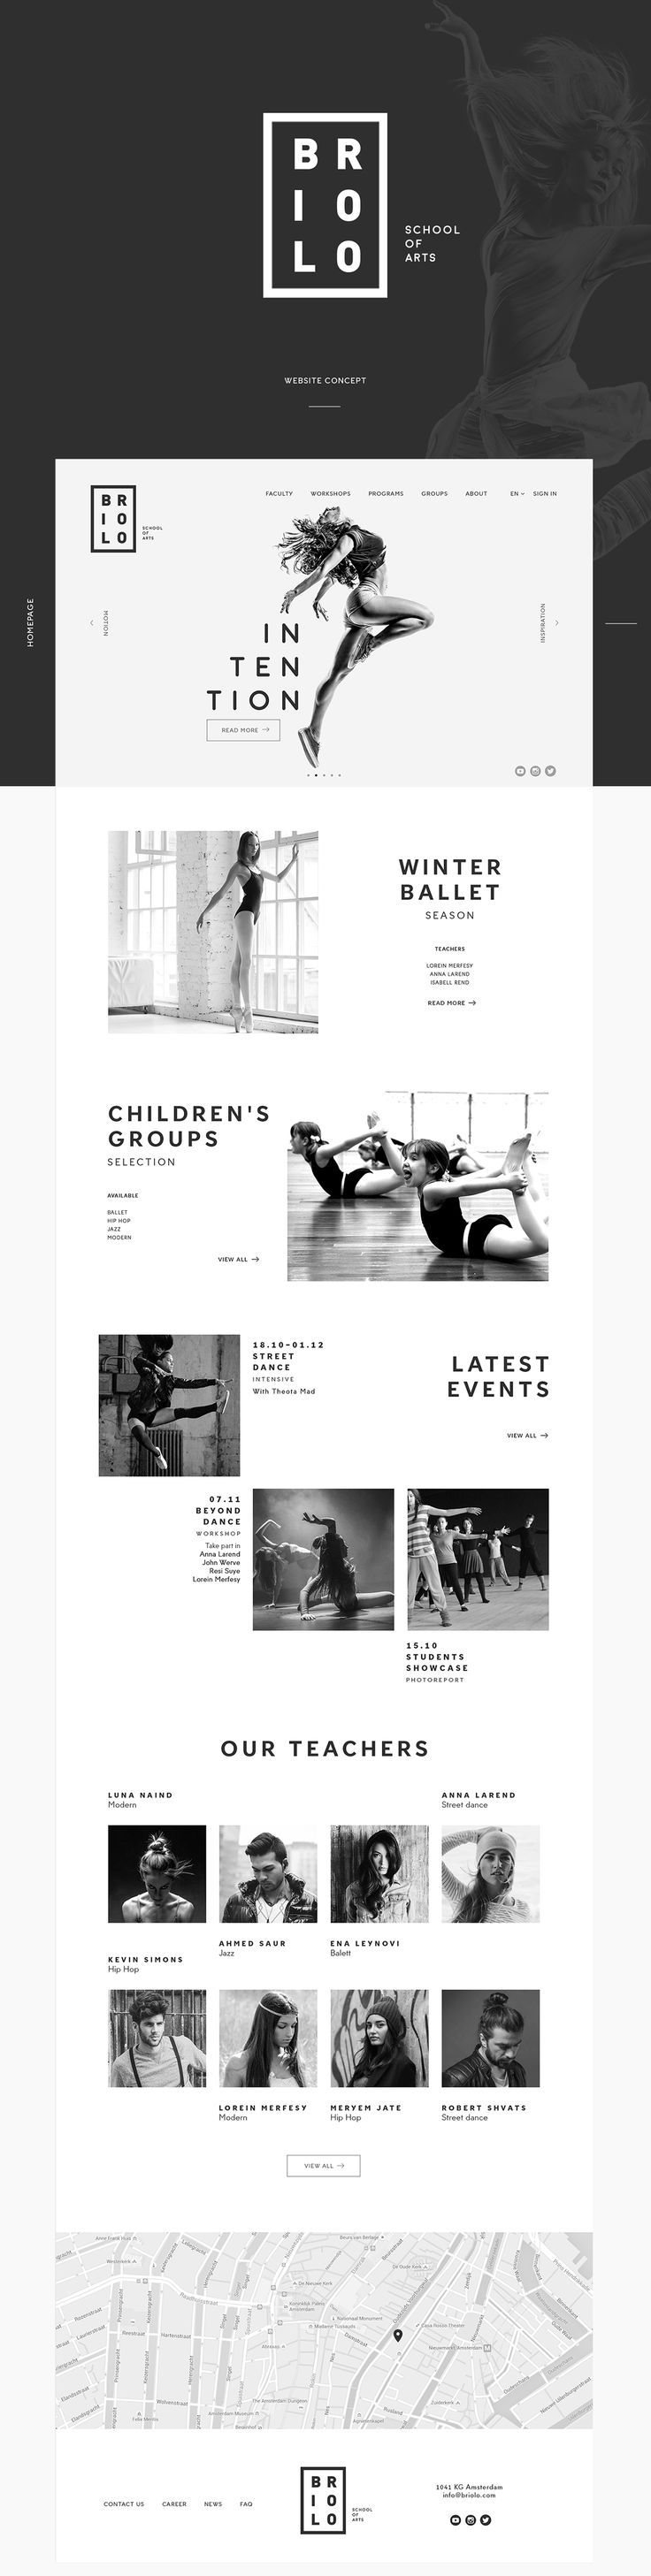 Simple Black and White Design | Abduzeedo Design Inspiration